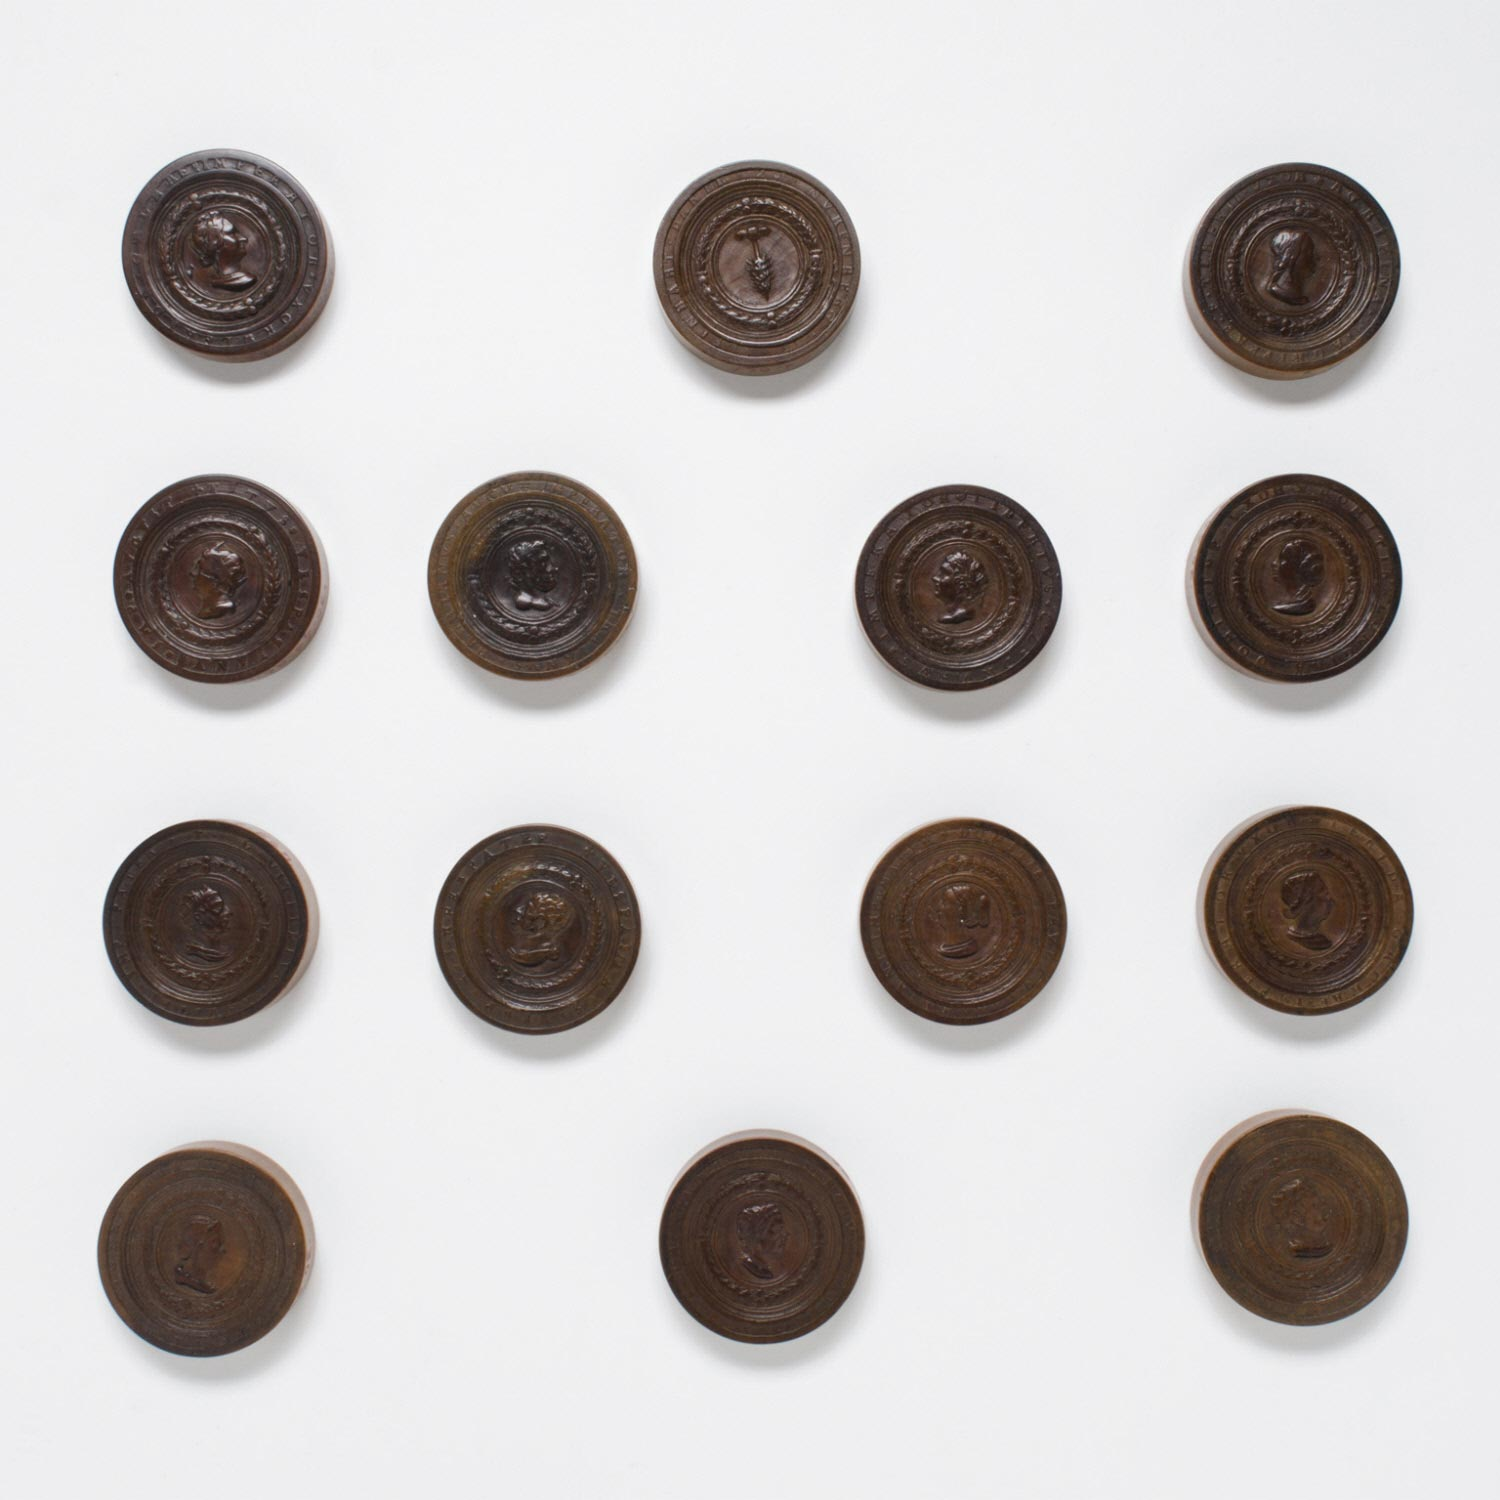 Board Game Markers (Fourteen) with Busts of Ancient Roman Emperors and Empresses